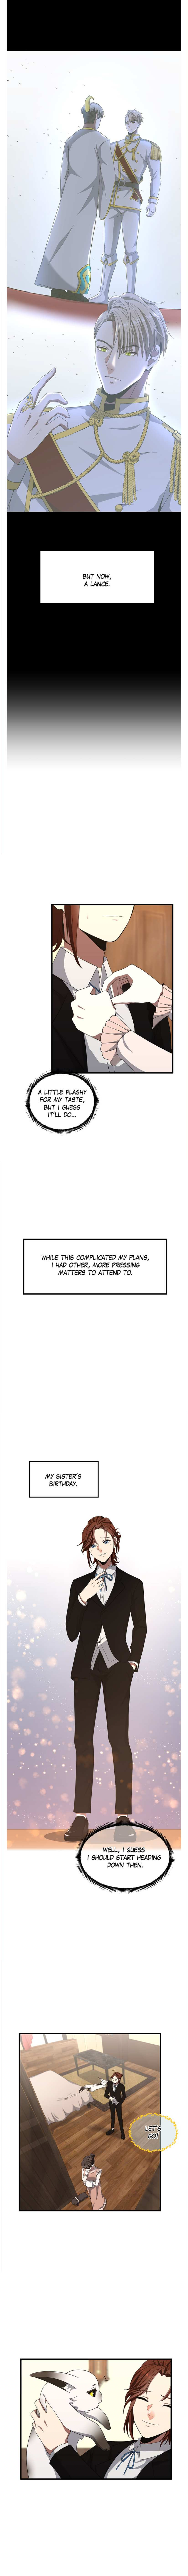 The Beginning After the End, Chapter 83 image 002